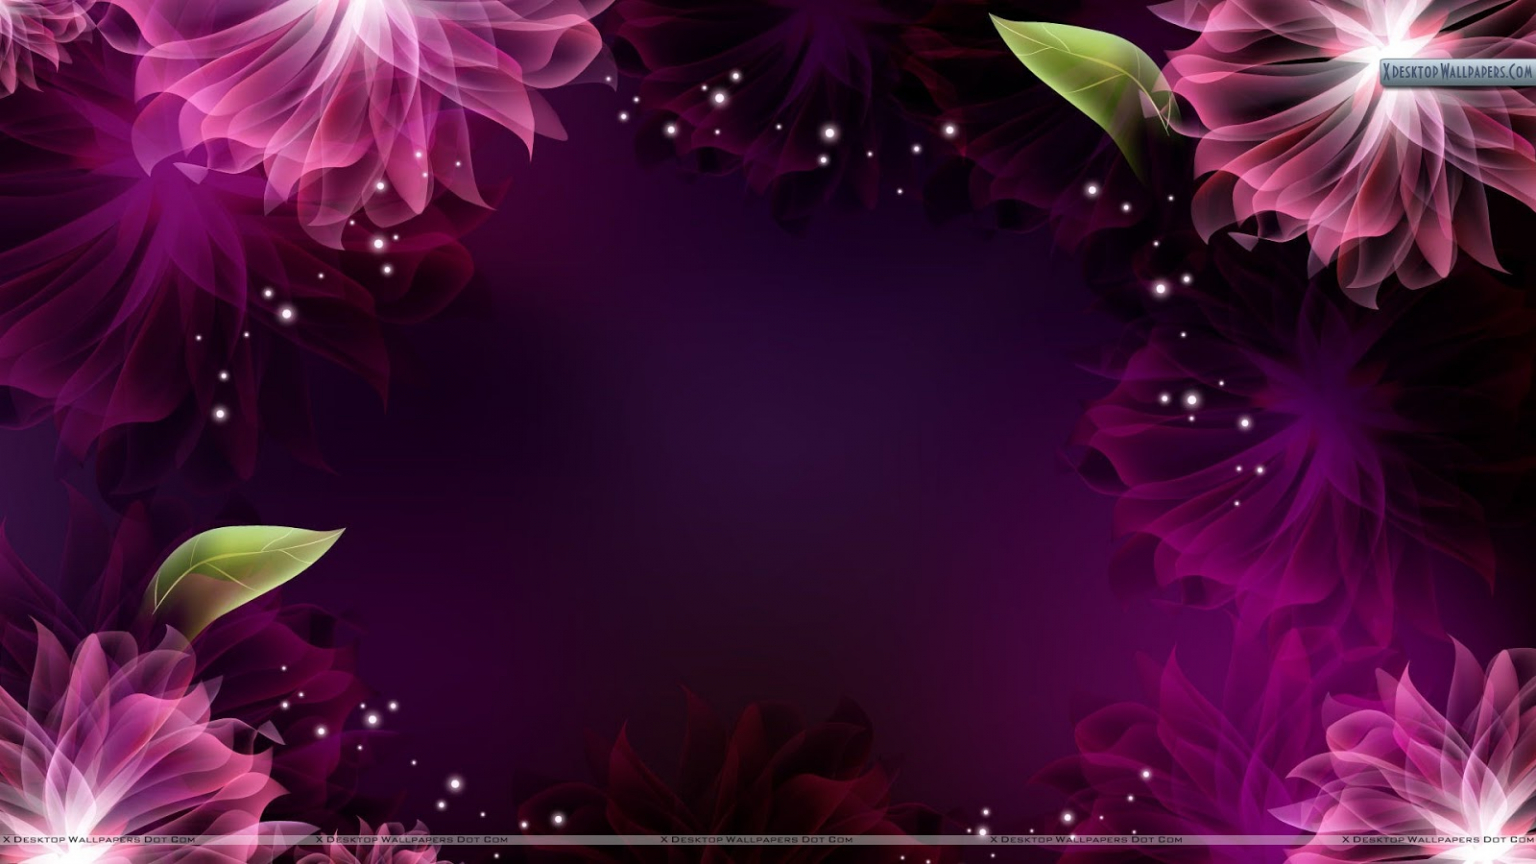 Free Download Beautiful Flowers Background My Image 1600x900 For